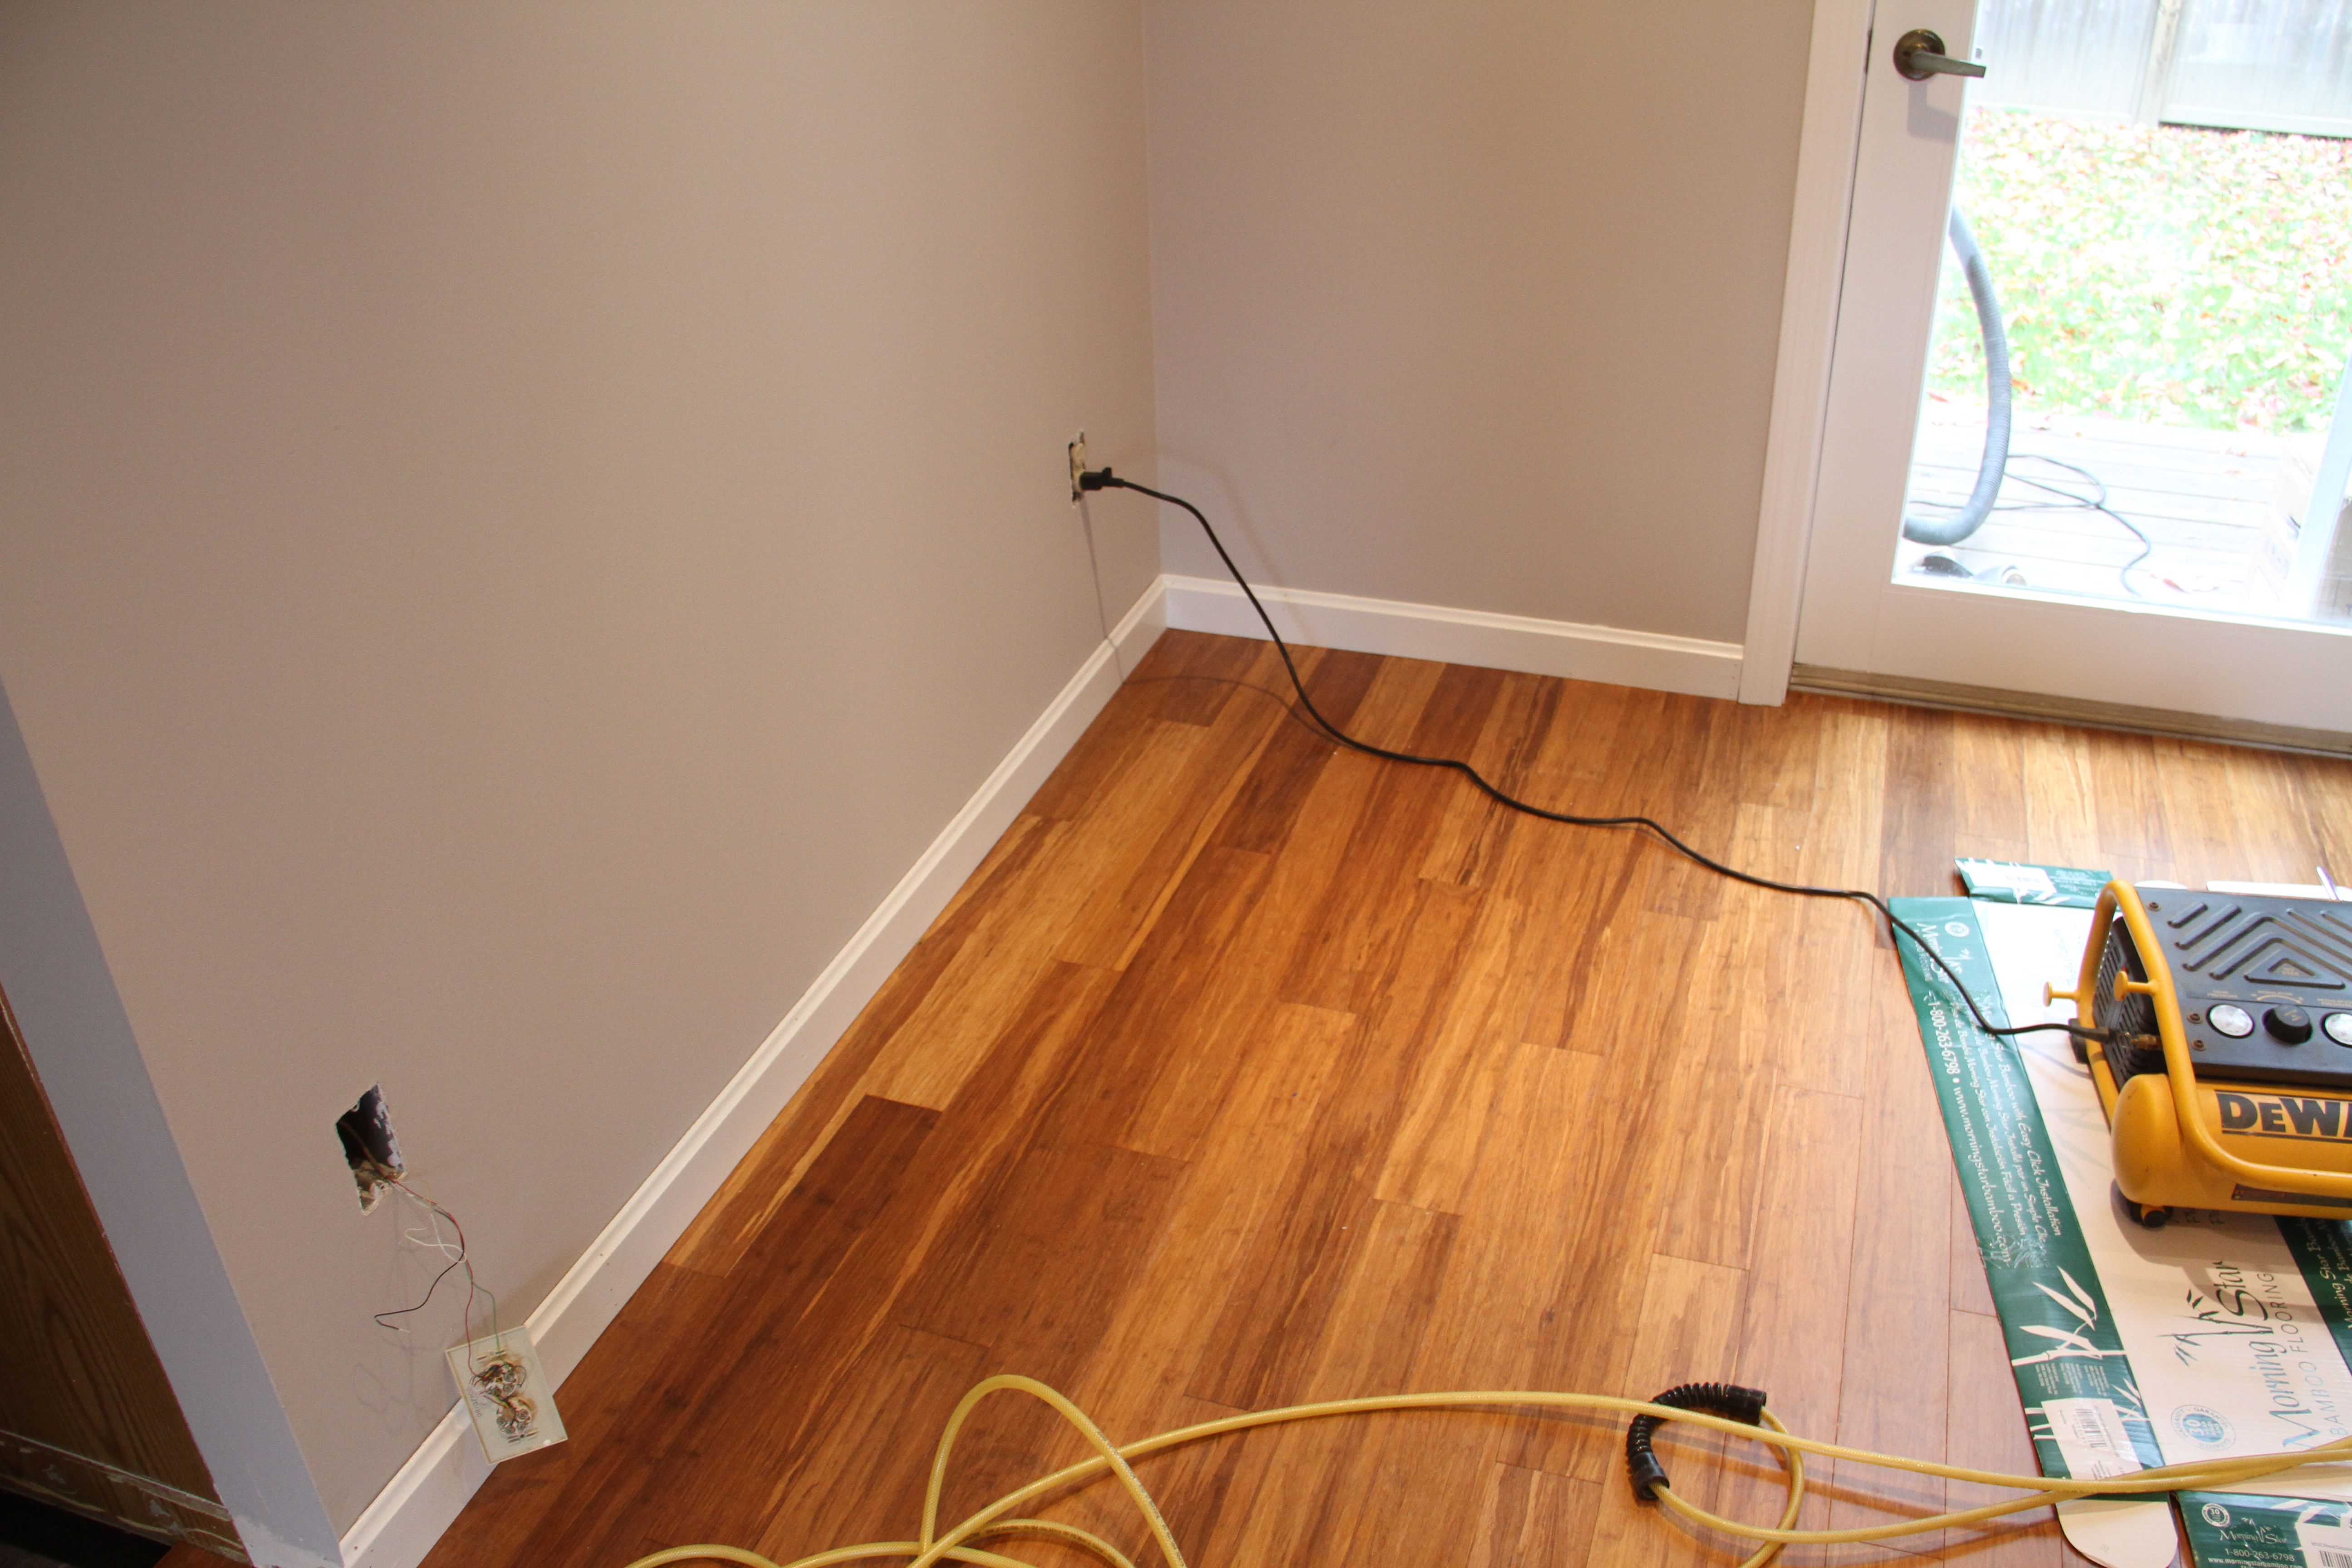 Baseboards! Just trimming out the flooring, plus the lighting and the paint choices... well, it was divine.